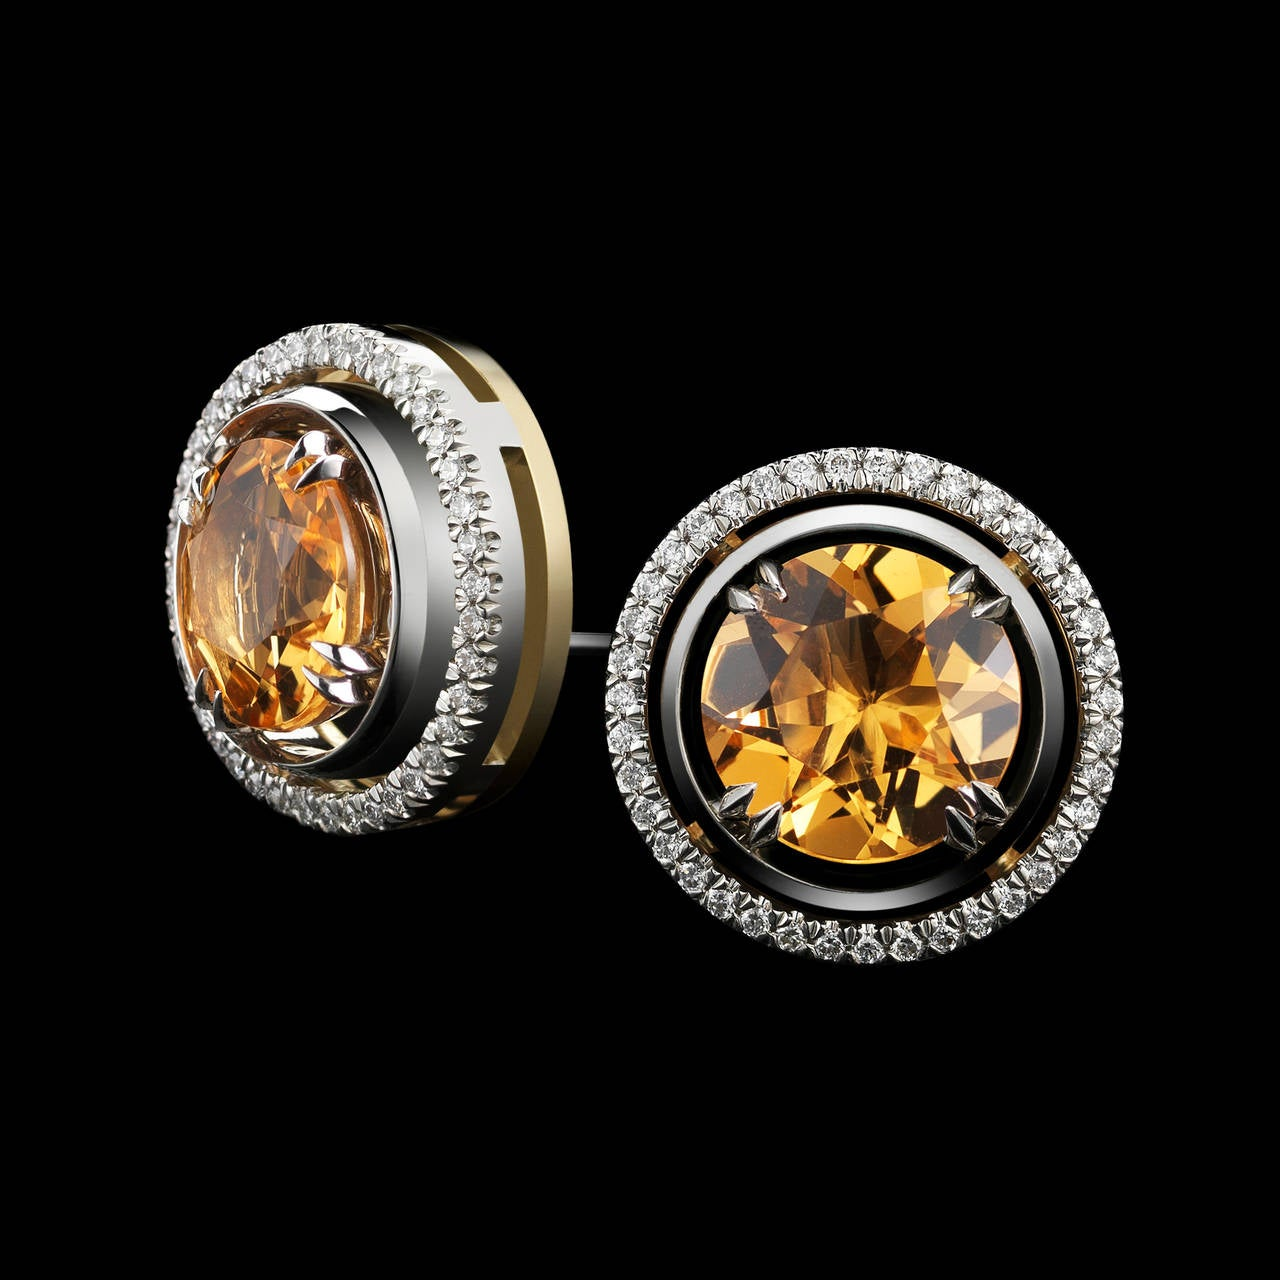 Contemporary Alexandra Mor Yellow Citrine Studs with Signature Diamond Earring Jackets For Sale